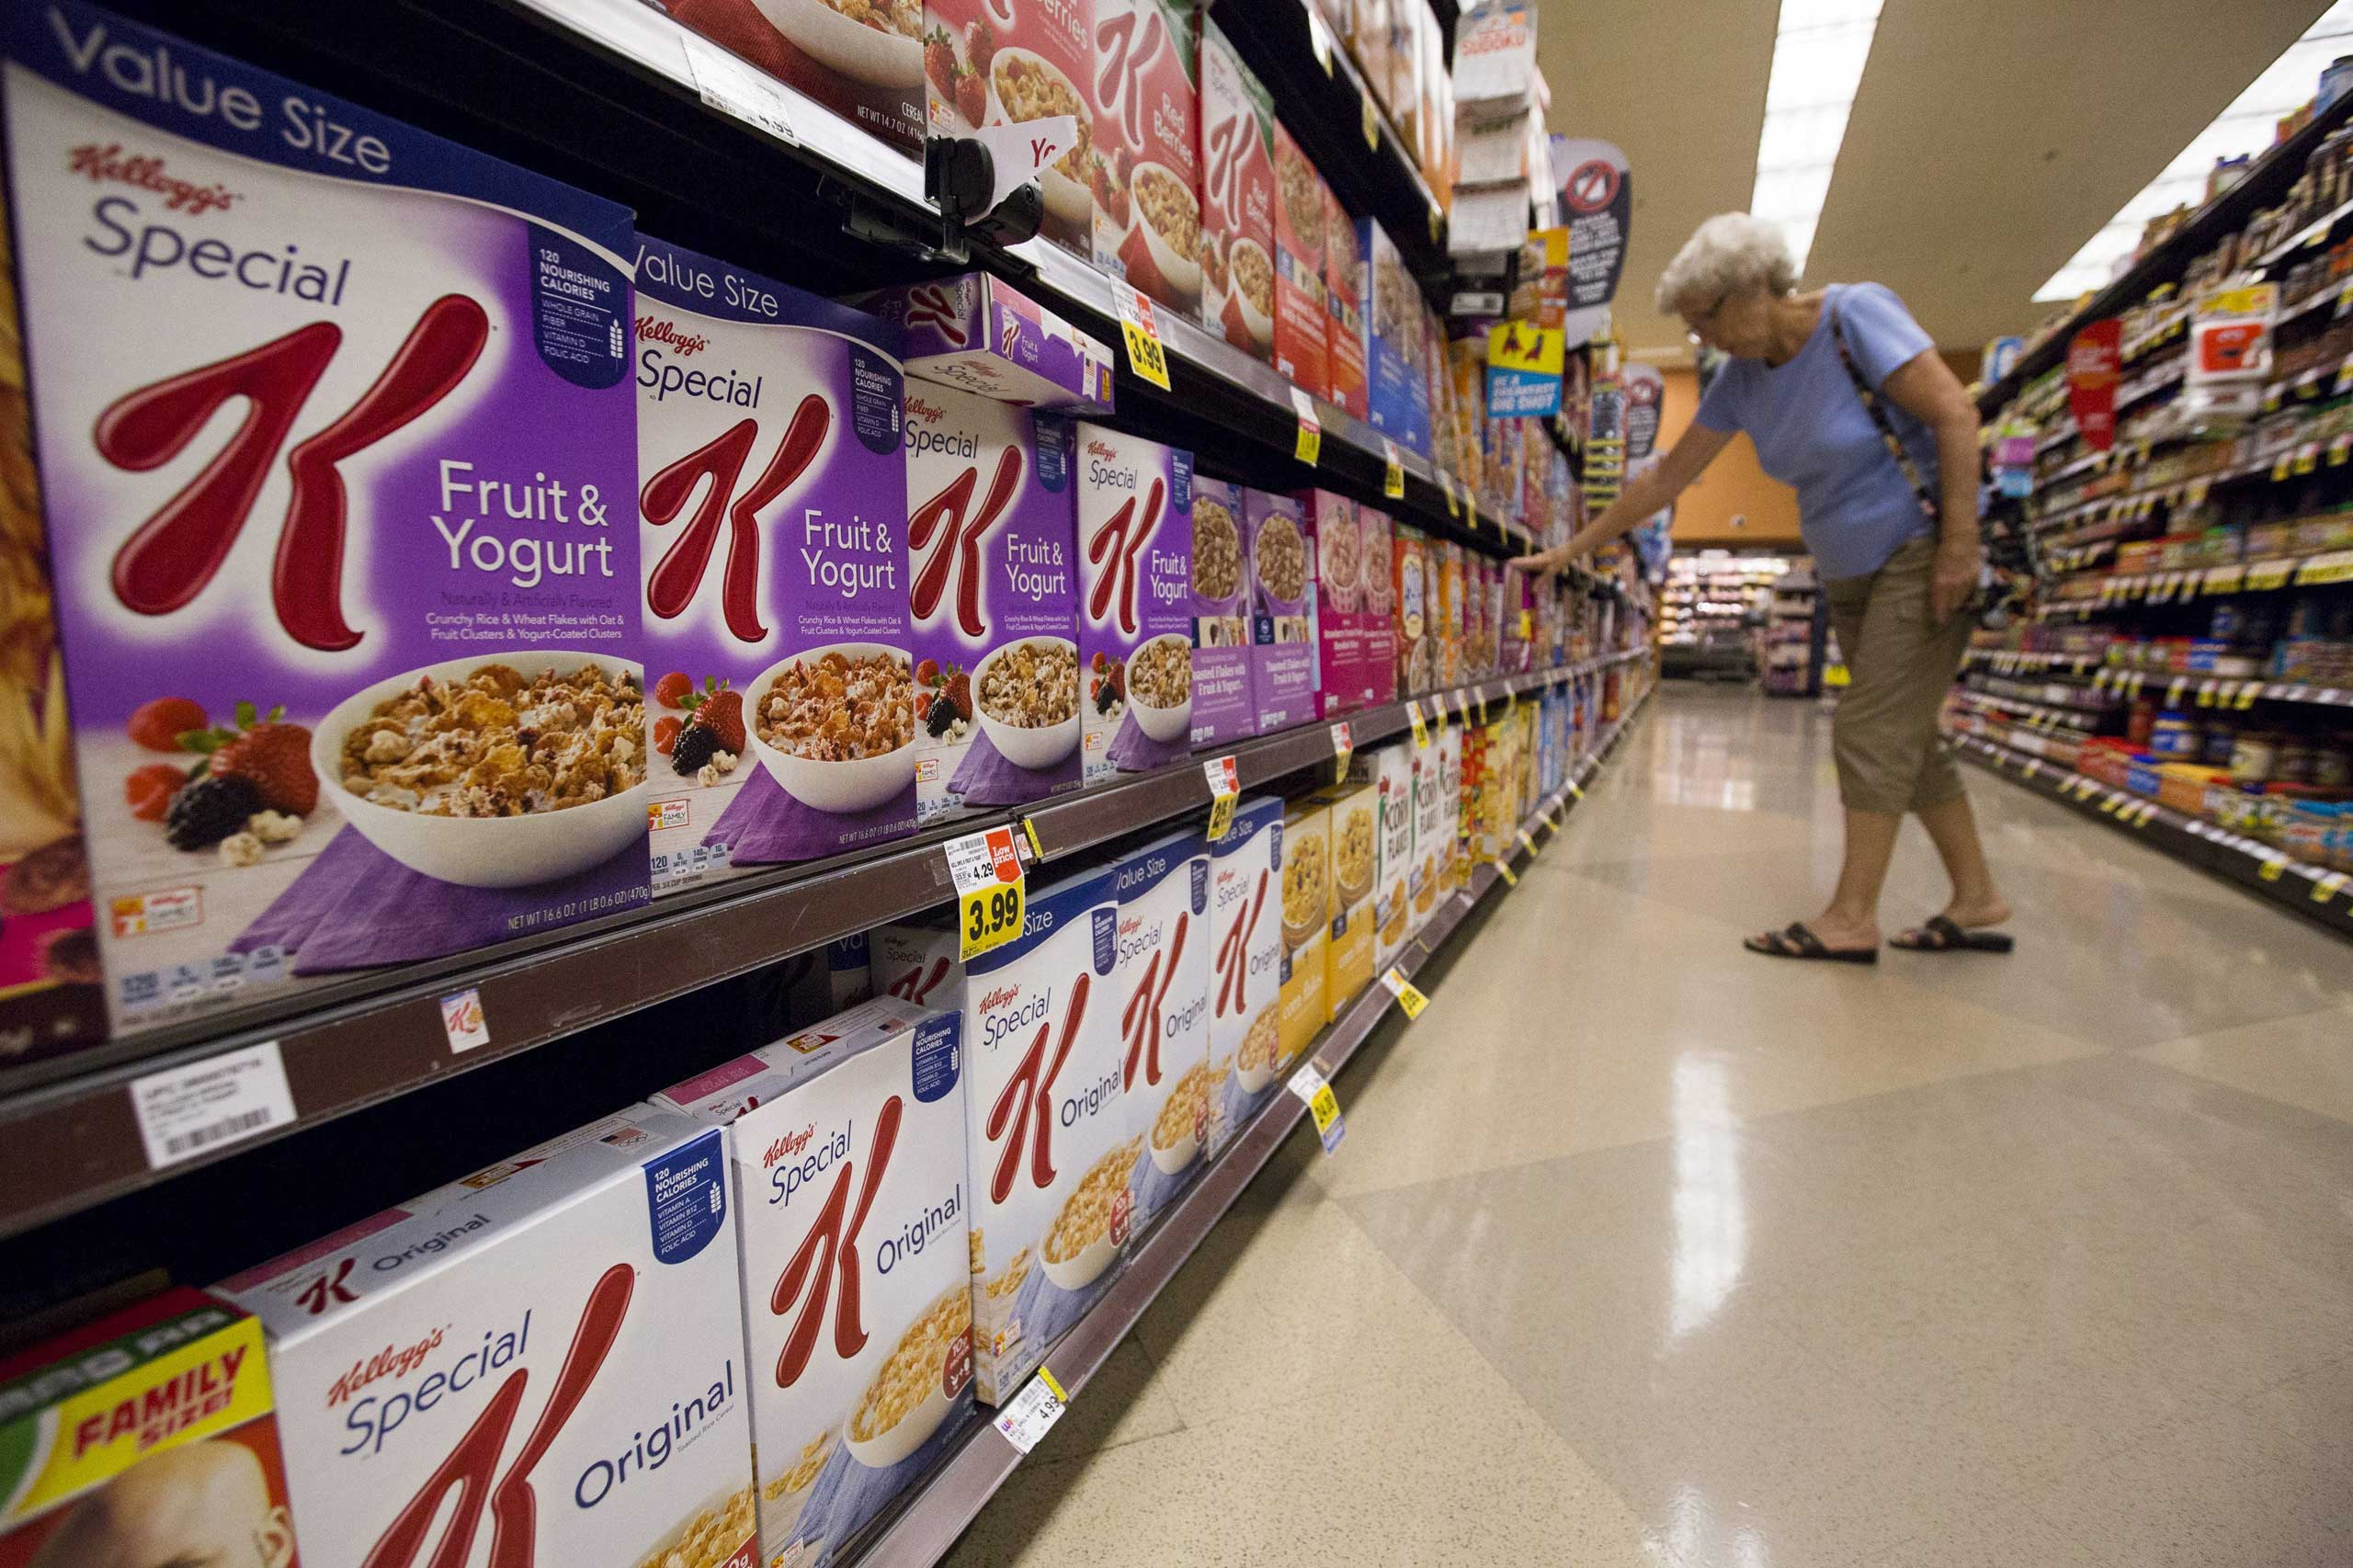 Kellogg's cereals are pictured at a grocery store in Pasadena, Calif. on Aug. 3, 2015.